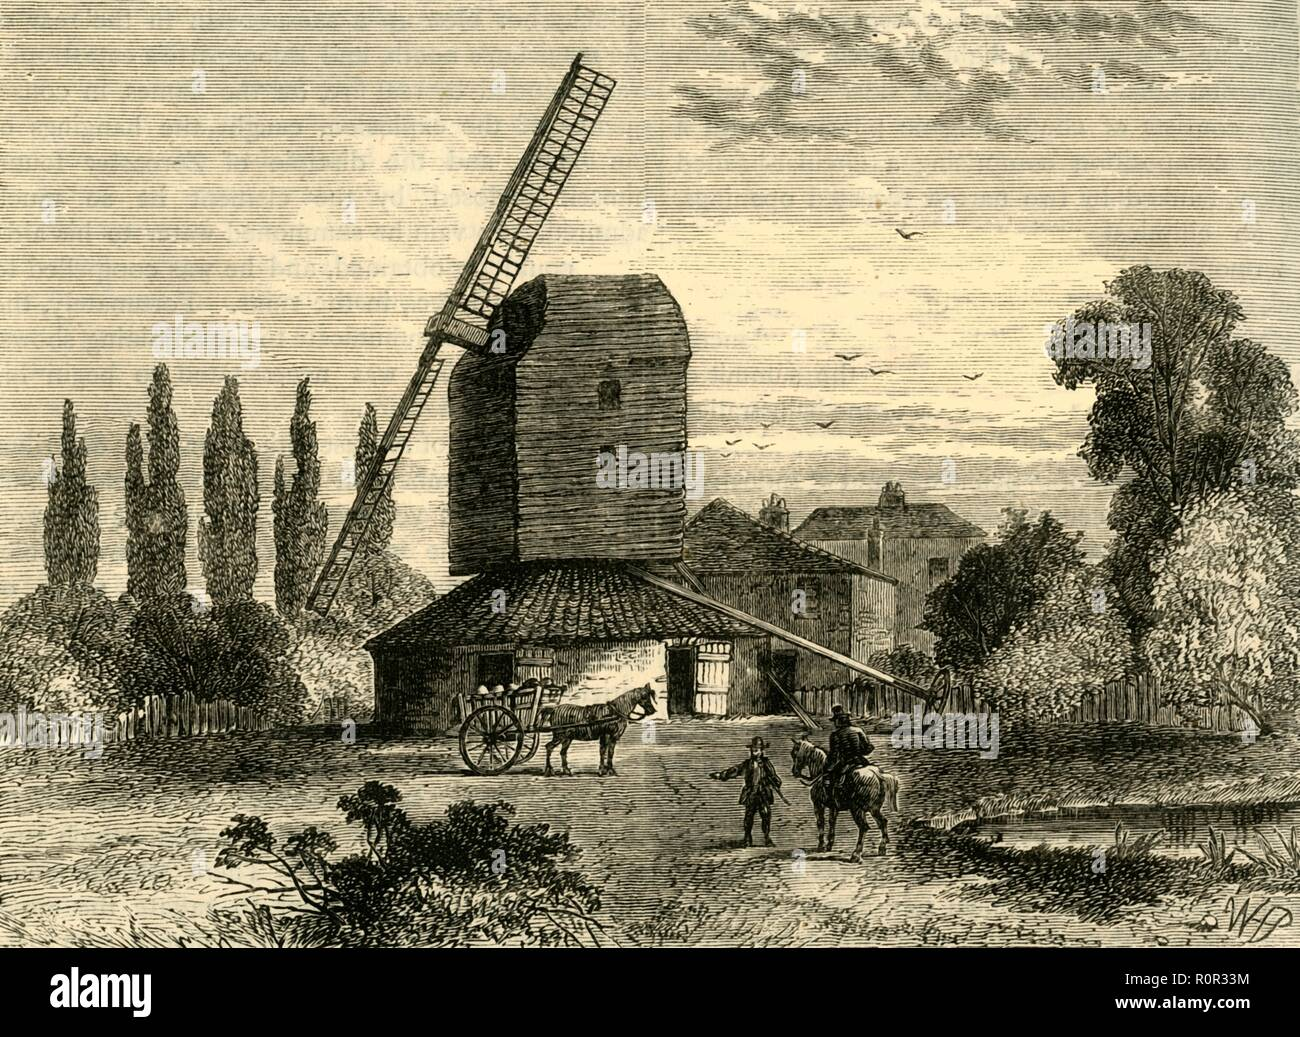 'Old Camberwell Mill', (c1878). Windmill in the village of Camberwell, (now part of south east London). Post mill first mentioned in 1709, which had fallen out of use by about 1831. From Old and New London: A Narrative of Its History, Its People, And Its Places. The Southern Suburbs, Volume VI, by Edward Walford. [Cassell, Petter, Galpin & Co., London, Paris & New York, c1878] - Stock Image